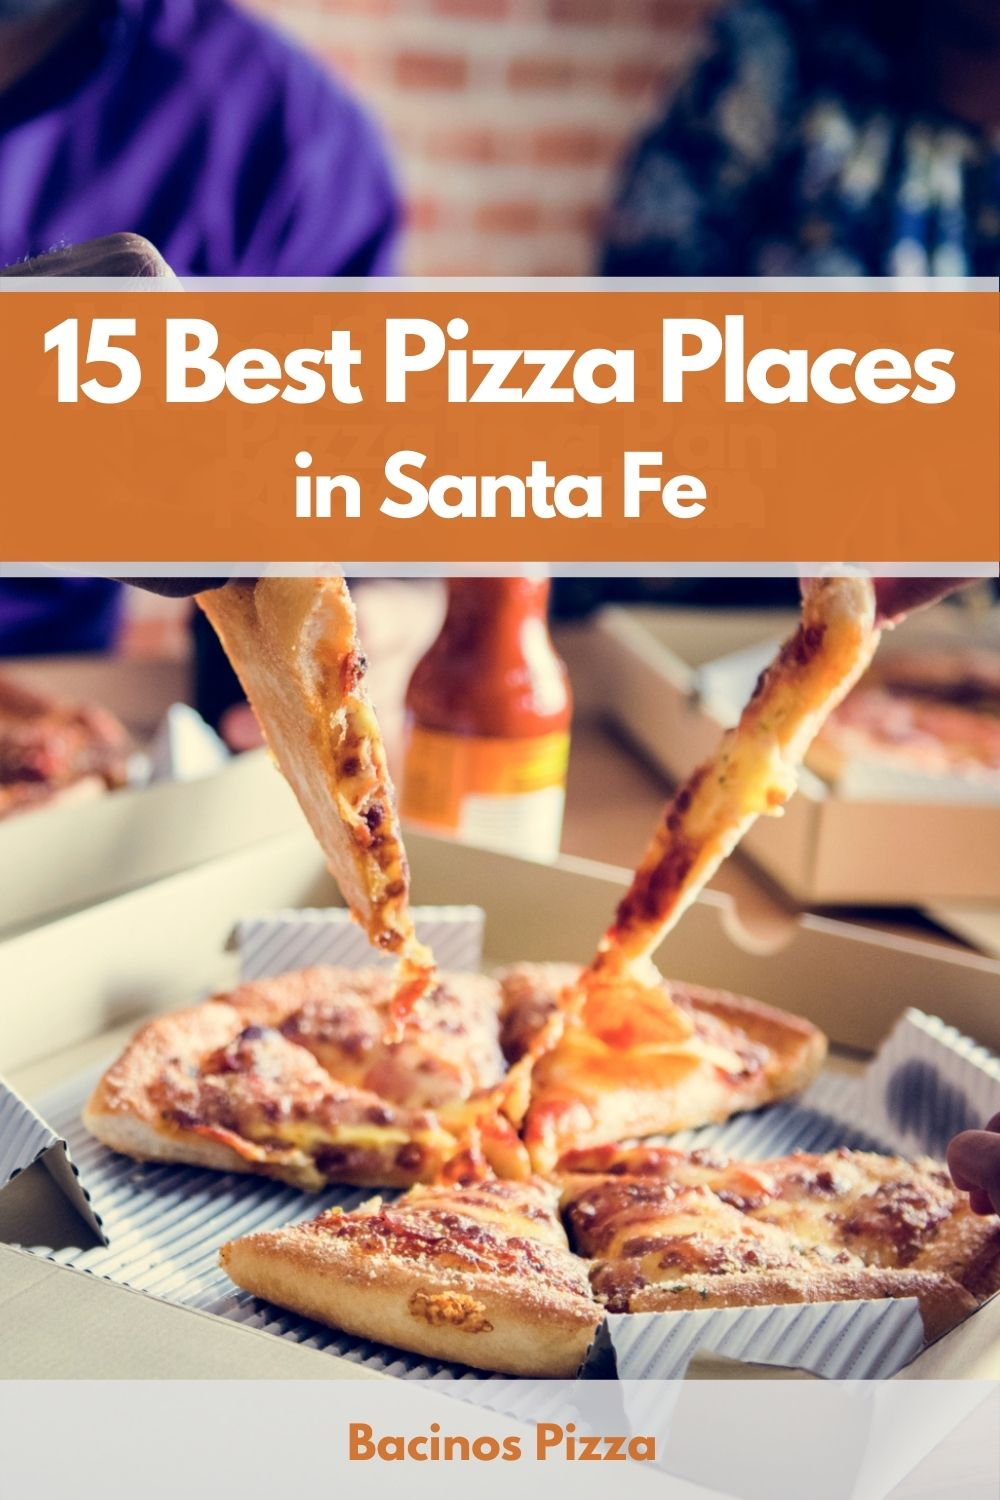 15 Best Pizza Places in Santa Fe pin